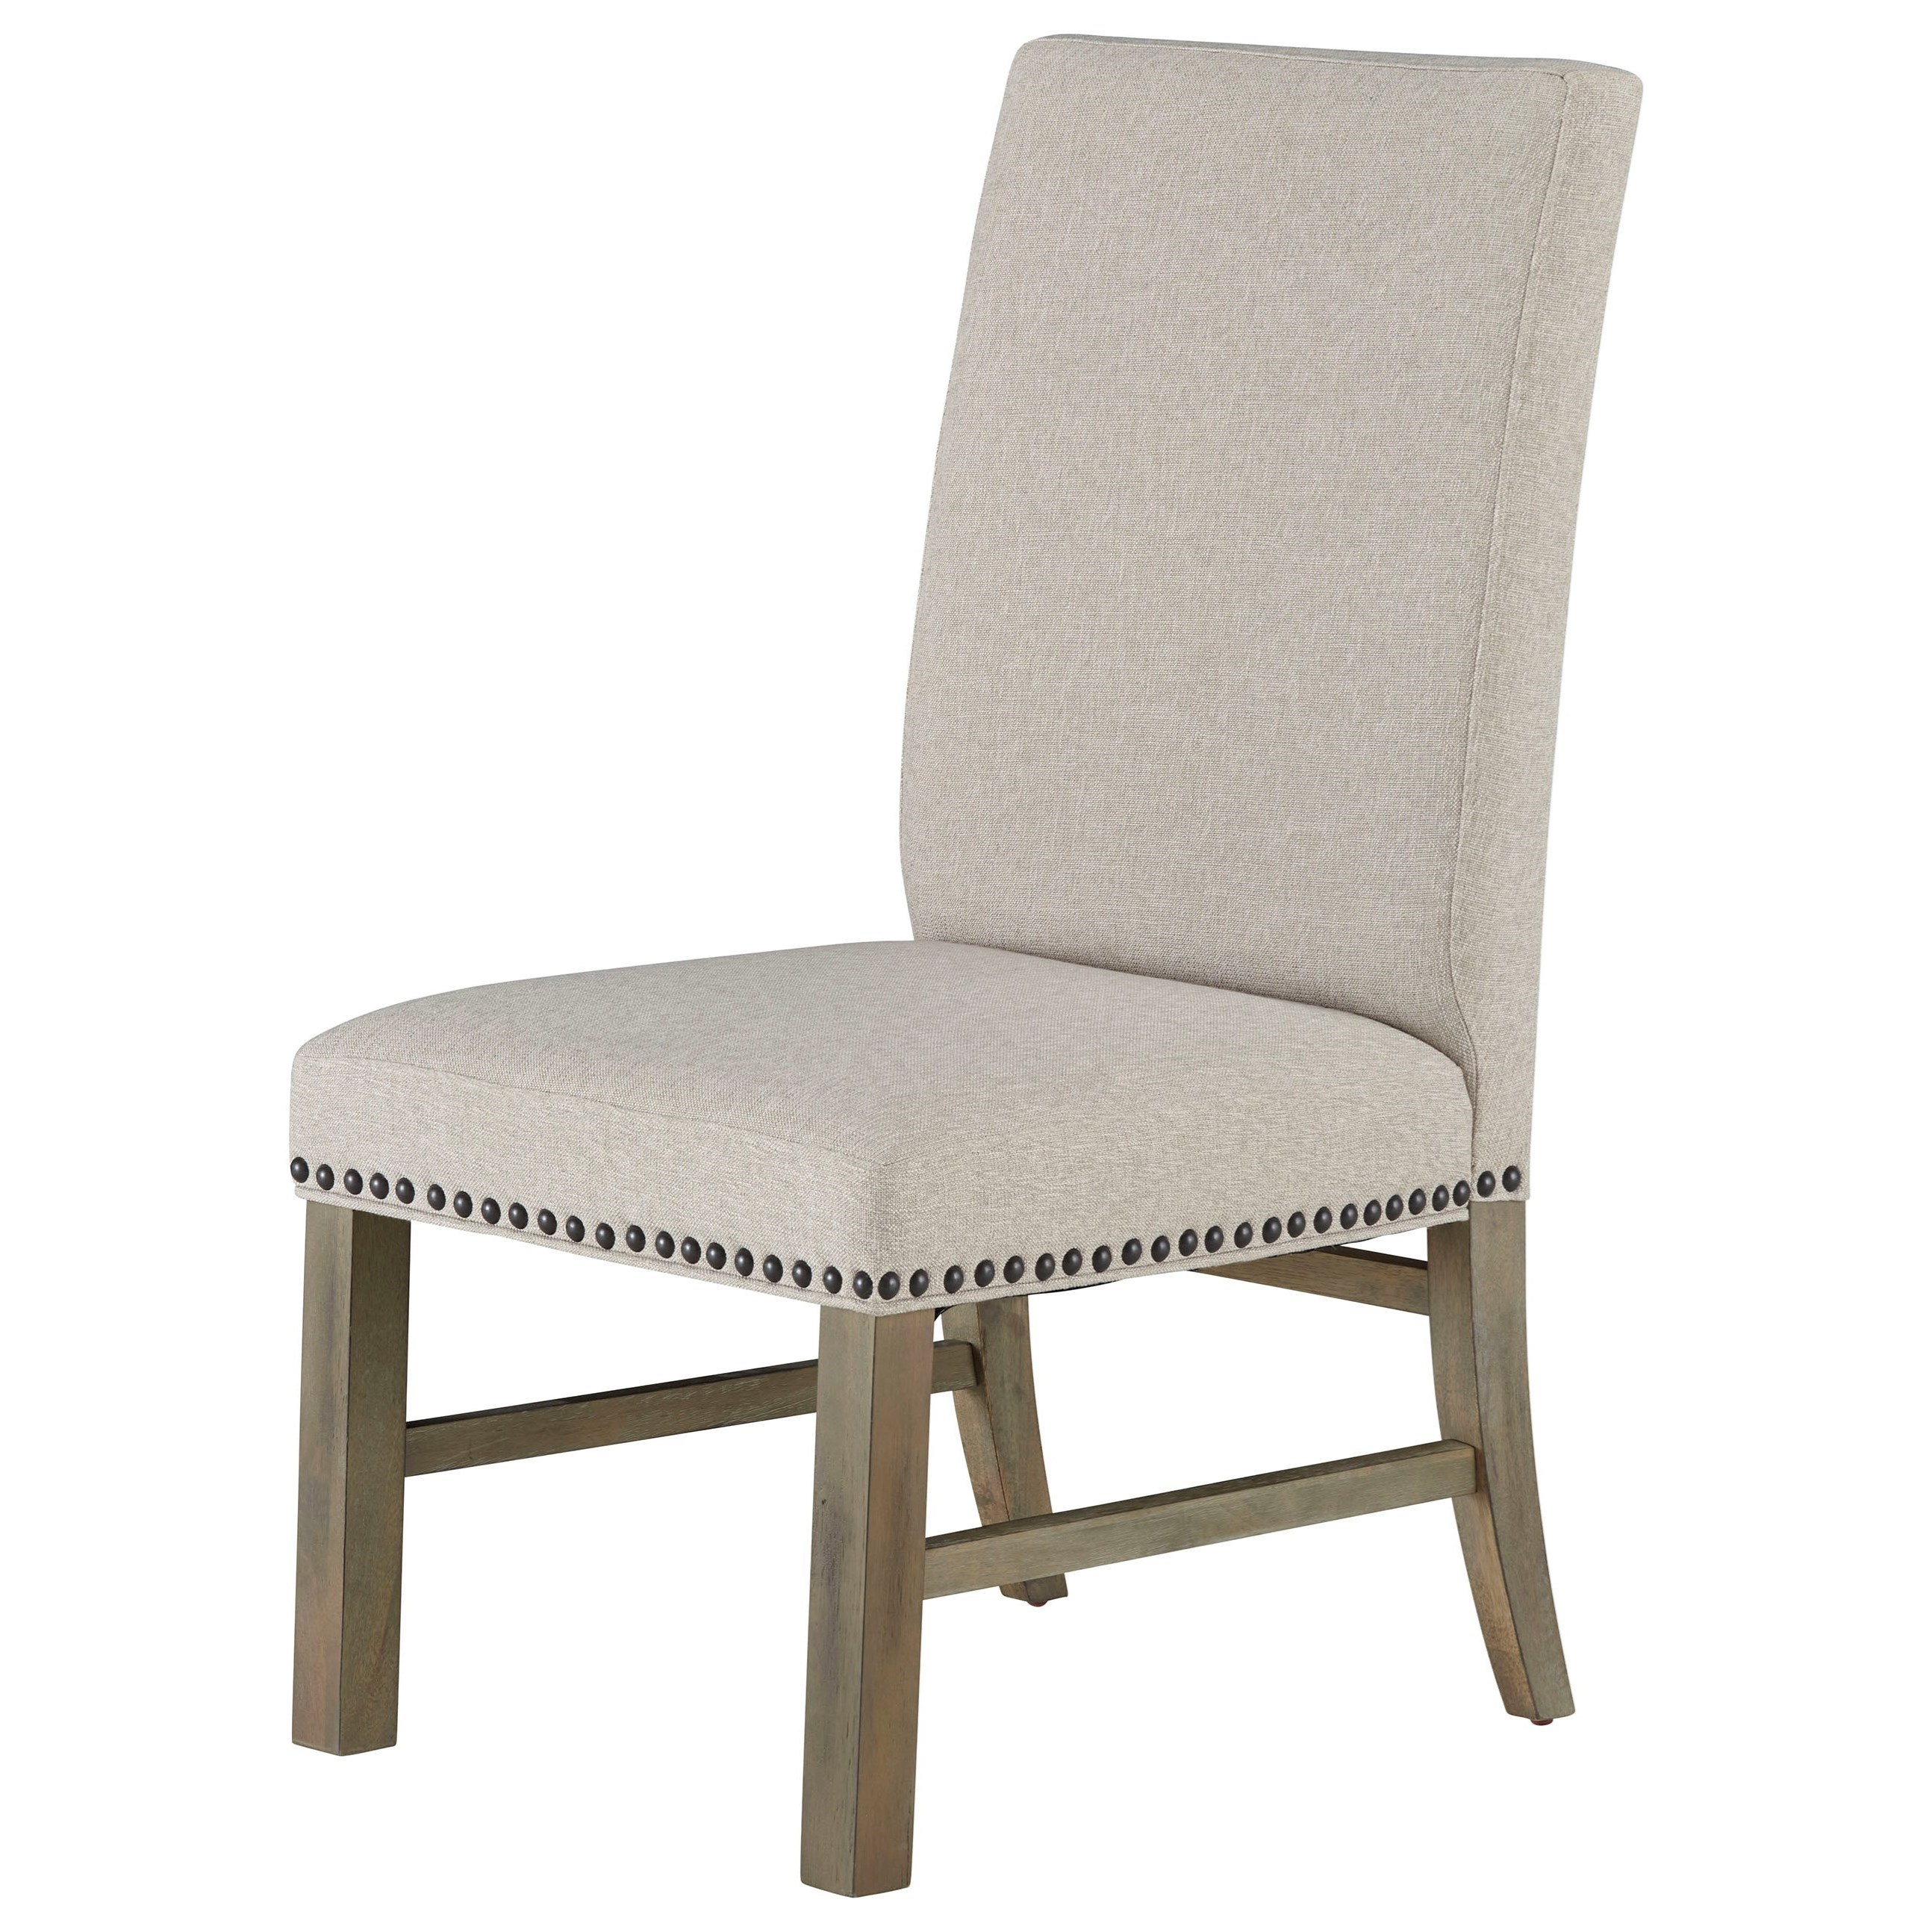 Attrayant Standard Furniture Trenton Set Of Two Upholstered Dining Side Chairs With  Nailheads   Linen Sand